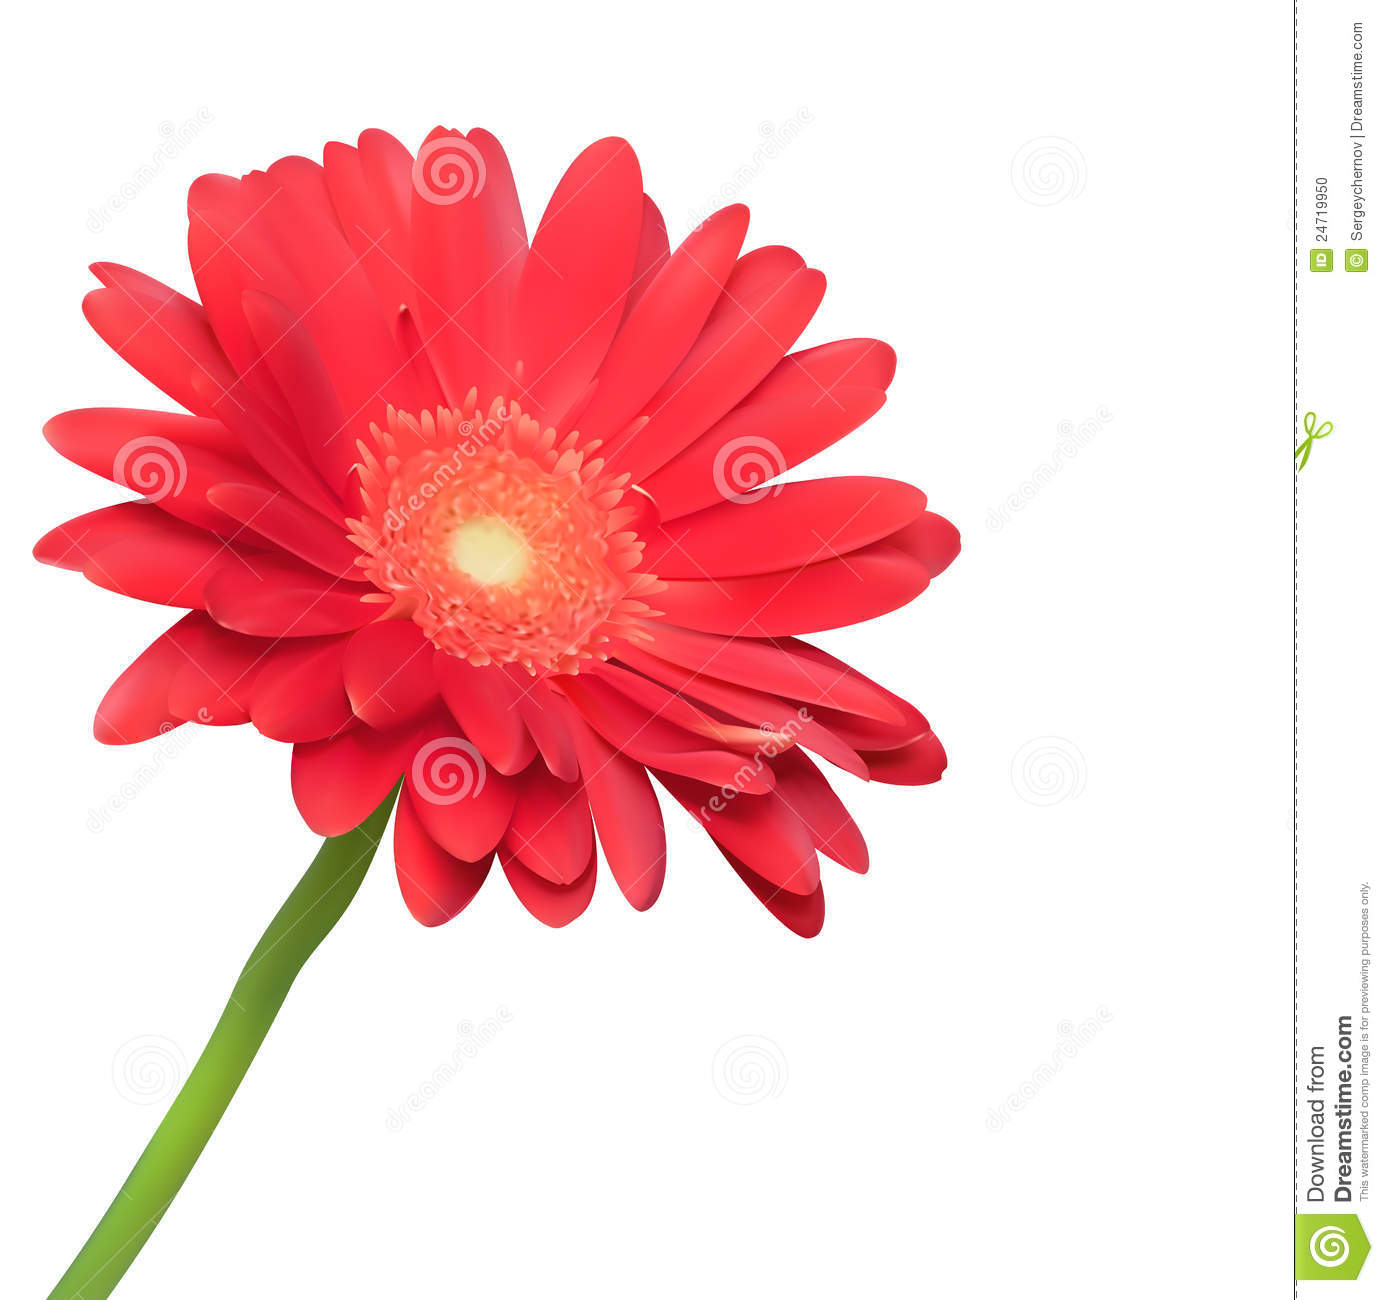 Images of red flower white background spacehero red flower on white background stock photo image 24719950 mightylinksfo